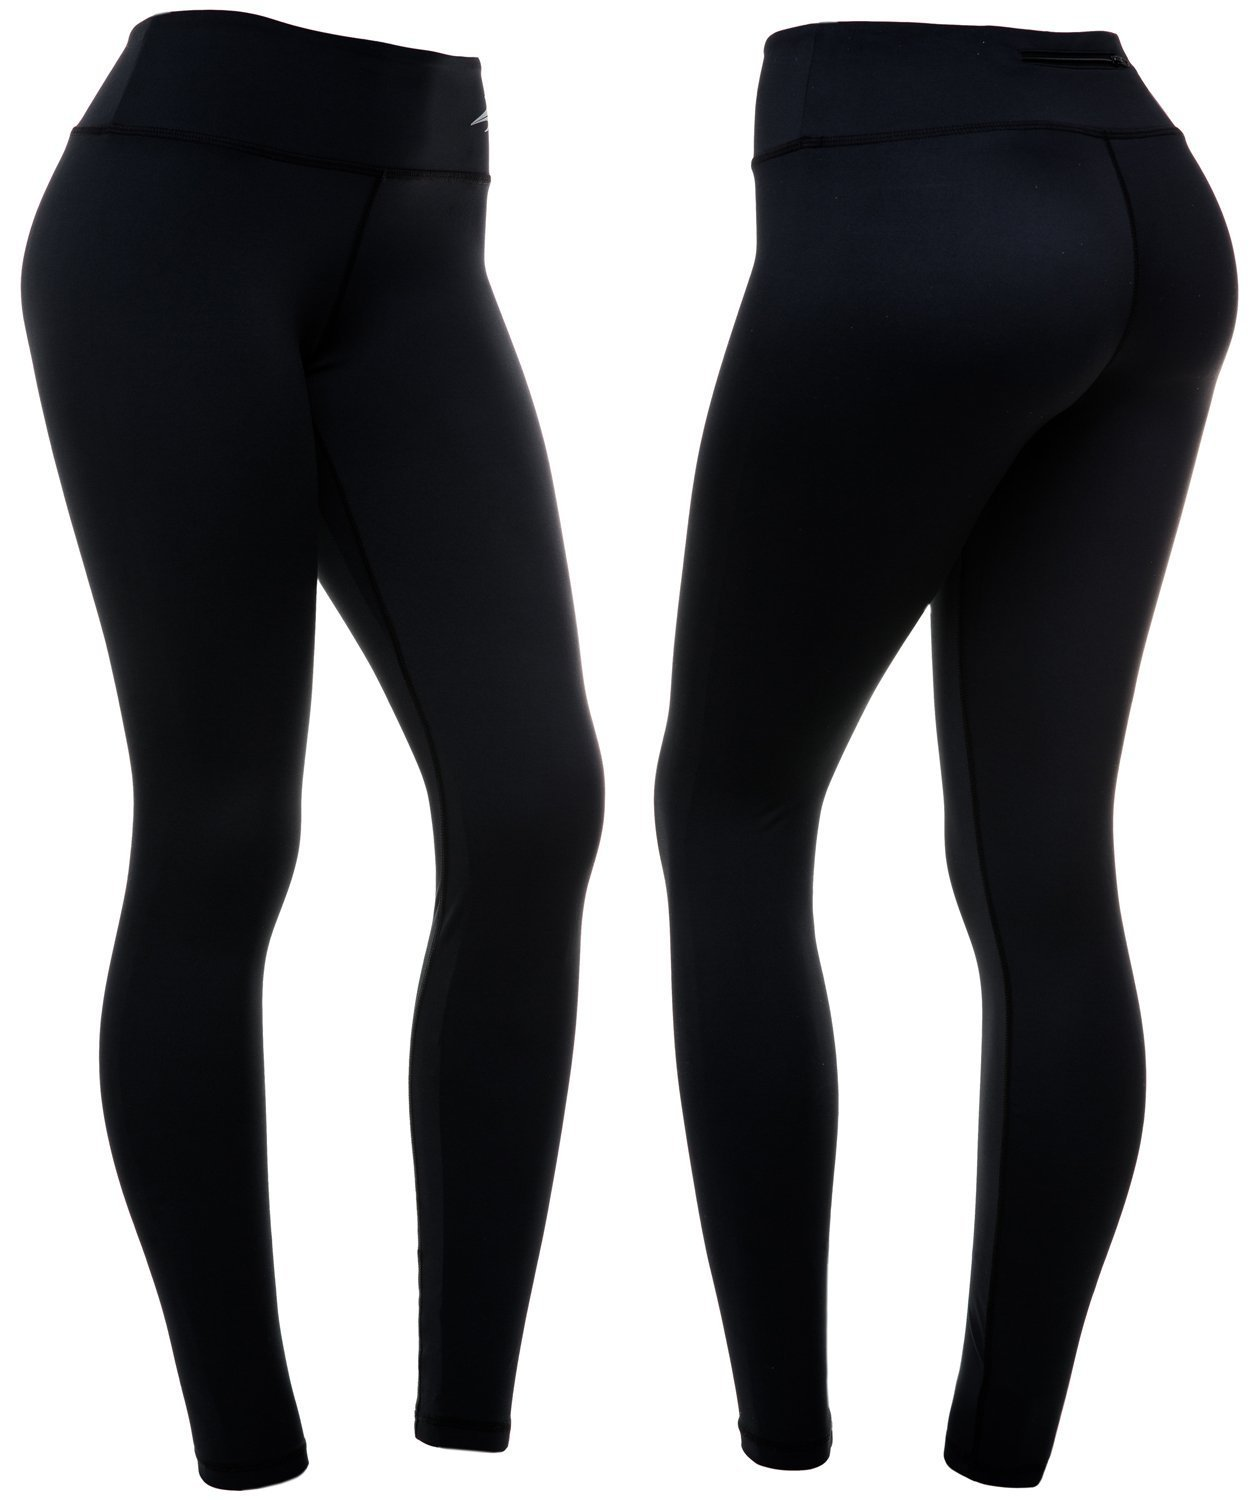 2efe78d54 Best Rated in Women s Sports Tights   Leggings   Helpful Customer ...